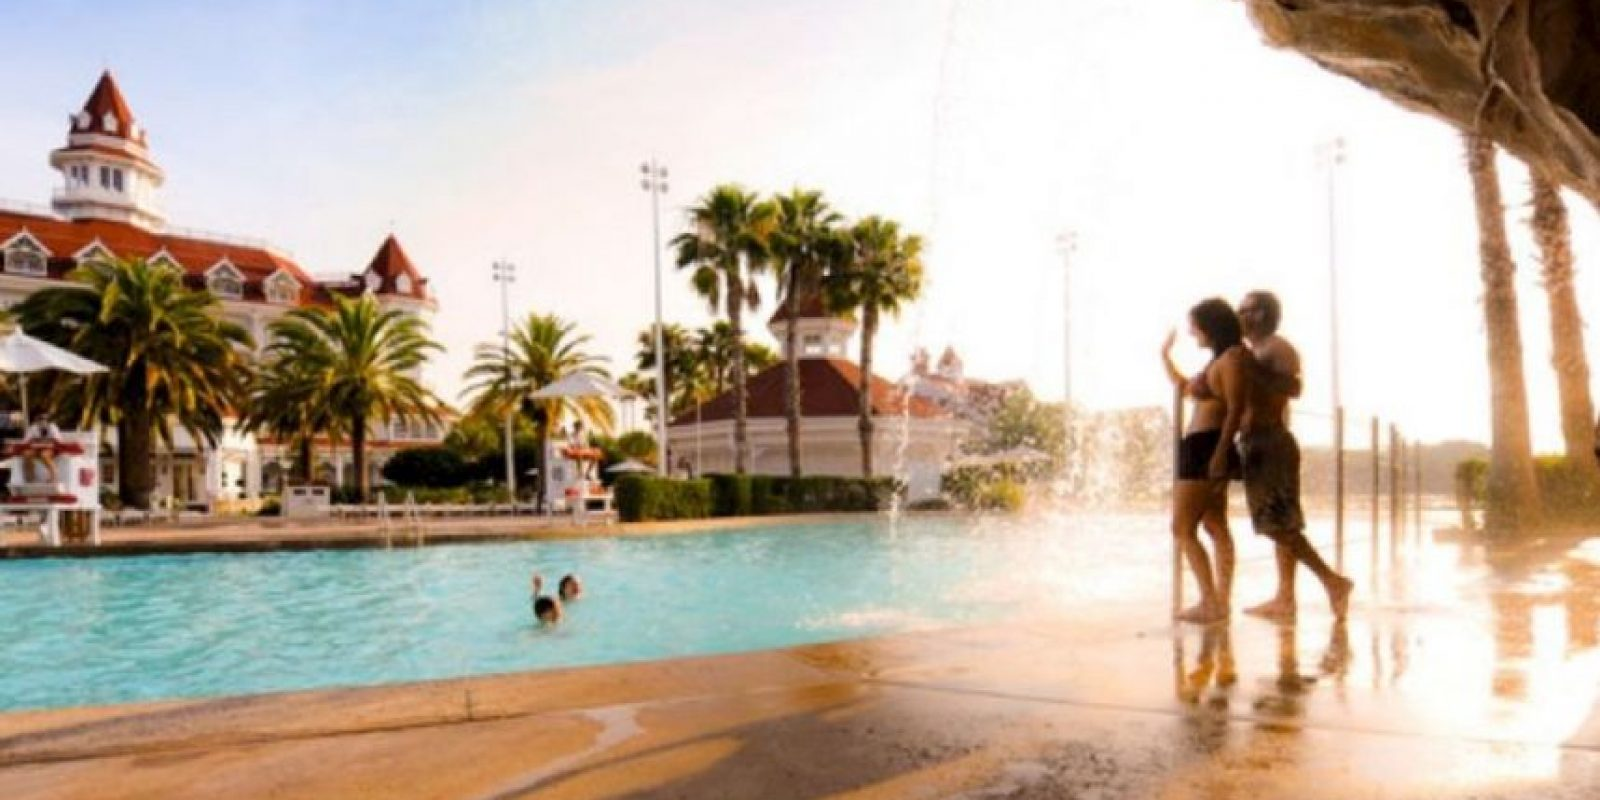 Está en las inmediaciones de Disney World, en Florida Foto: Disneyworld.disney.go.com